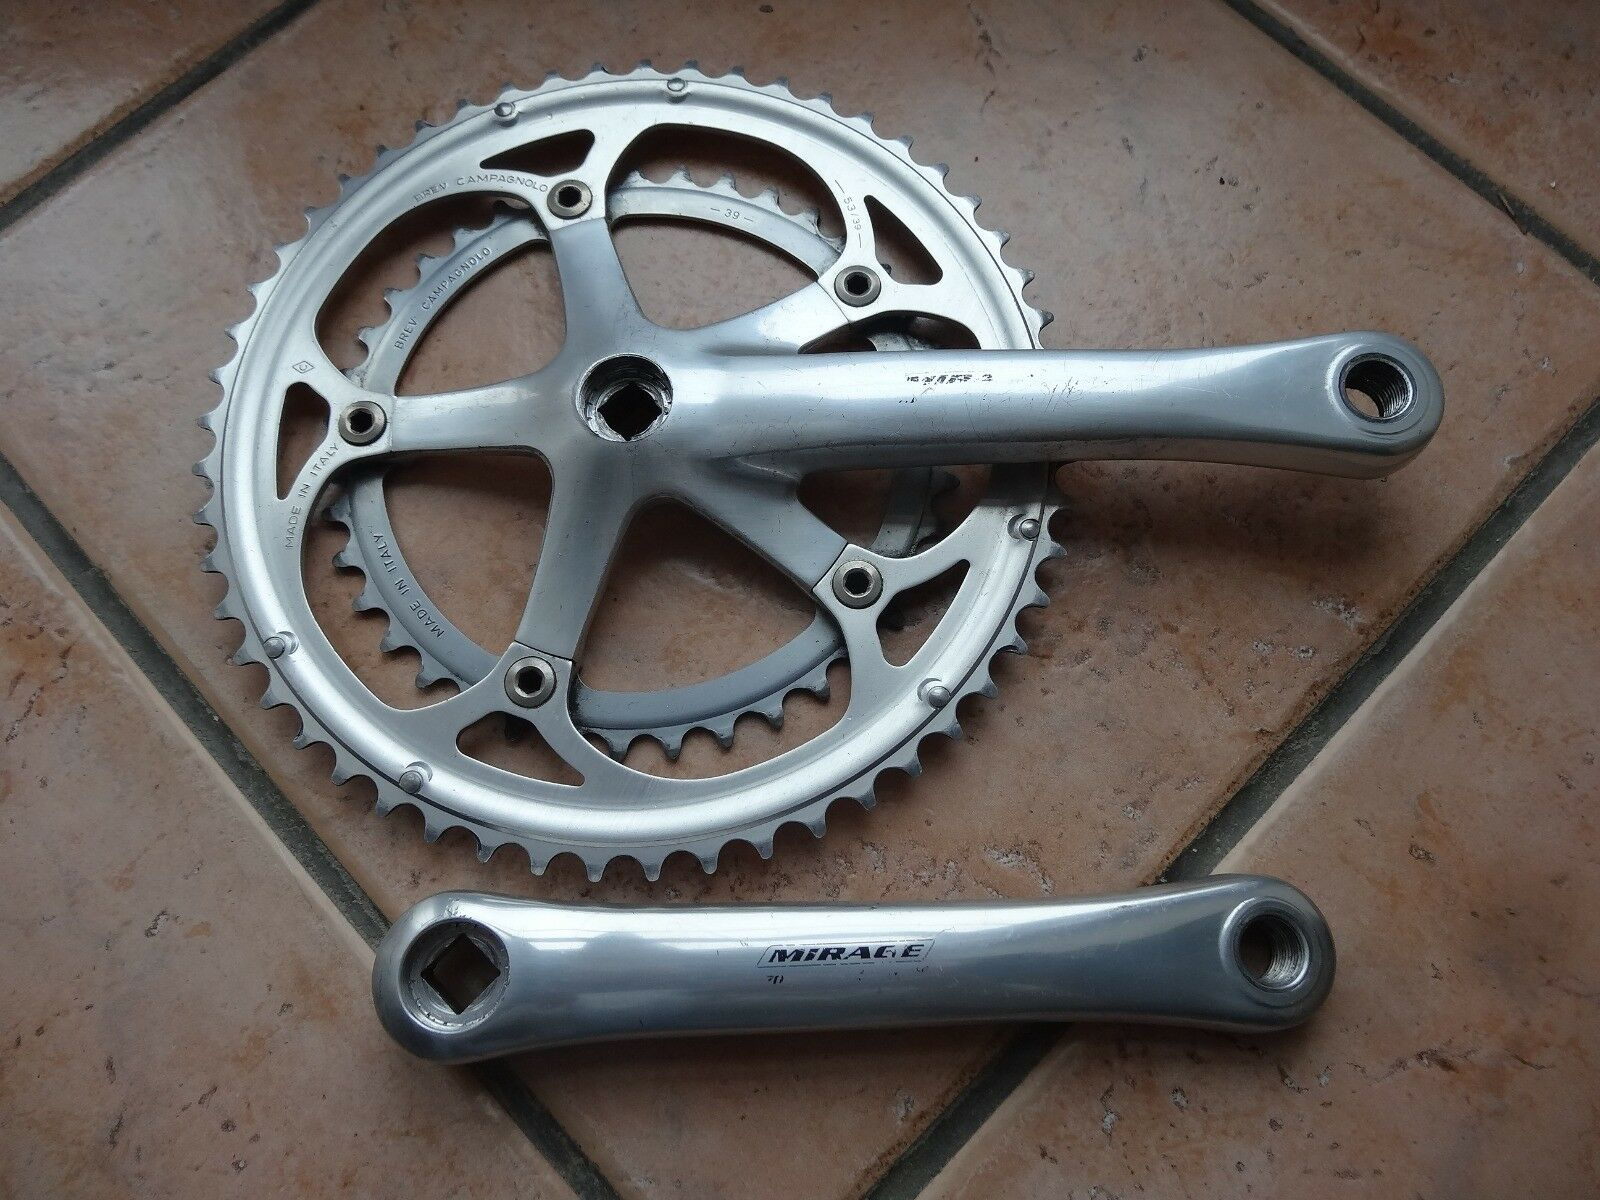 Campagnolo Mirage crankset 53 39  170mm lenght